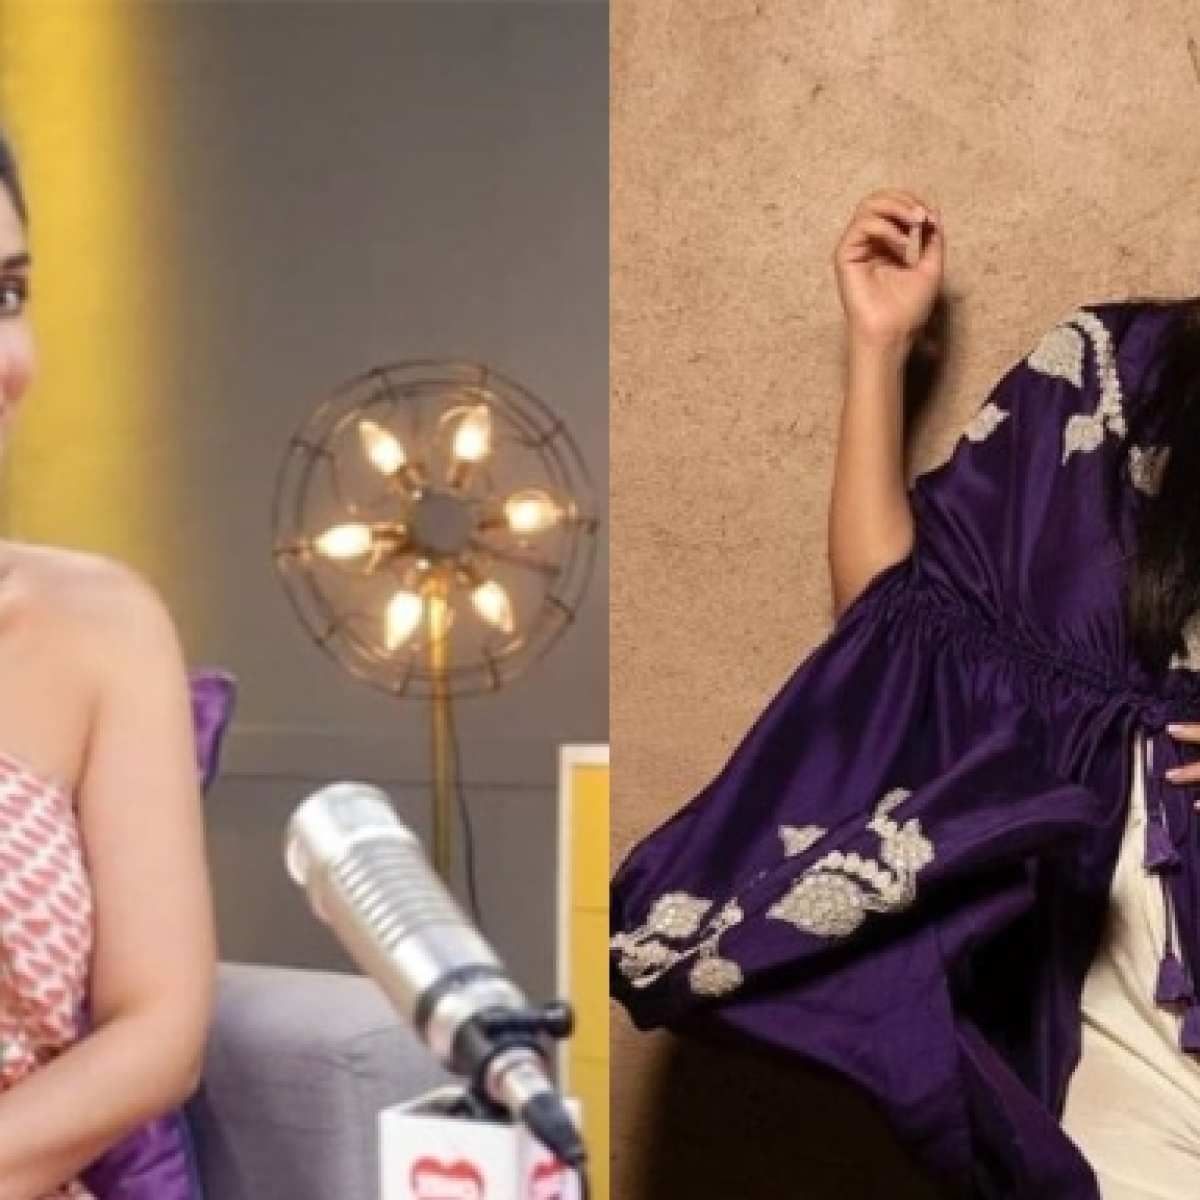 From Kareena Kapoor to Neha Dhupia, podcasts by Bollywood celebs to listen during self-quarantine